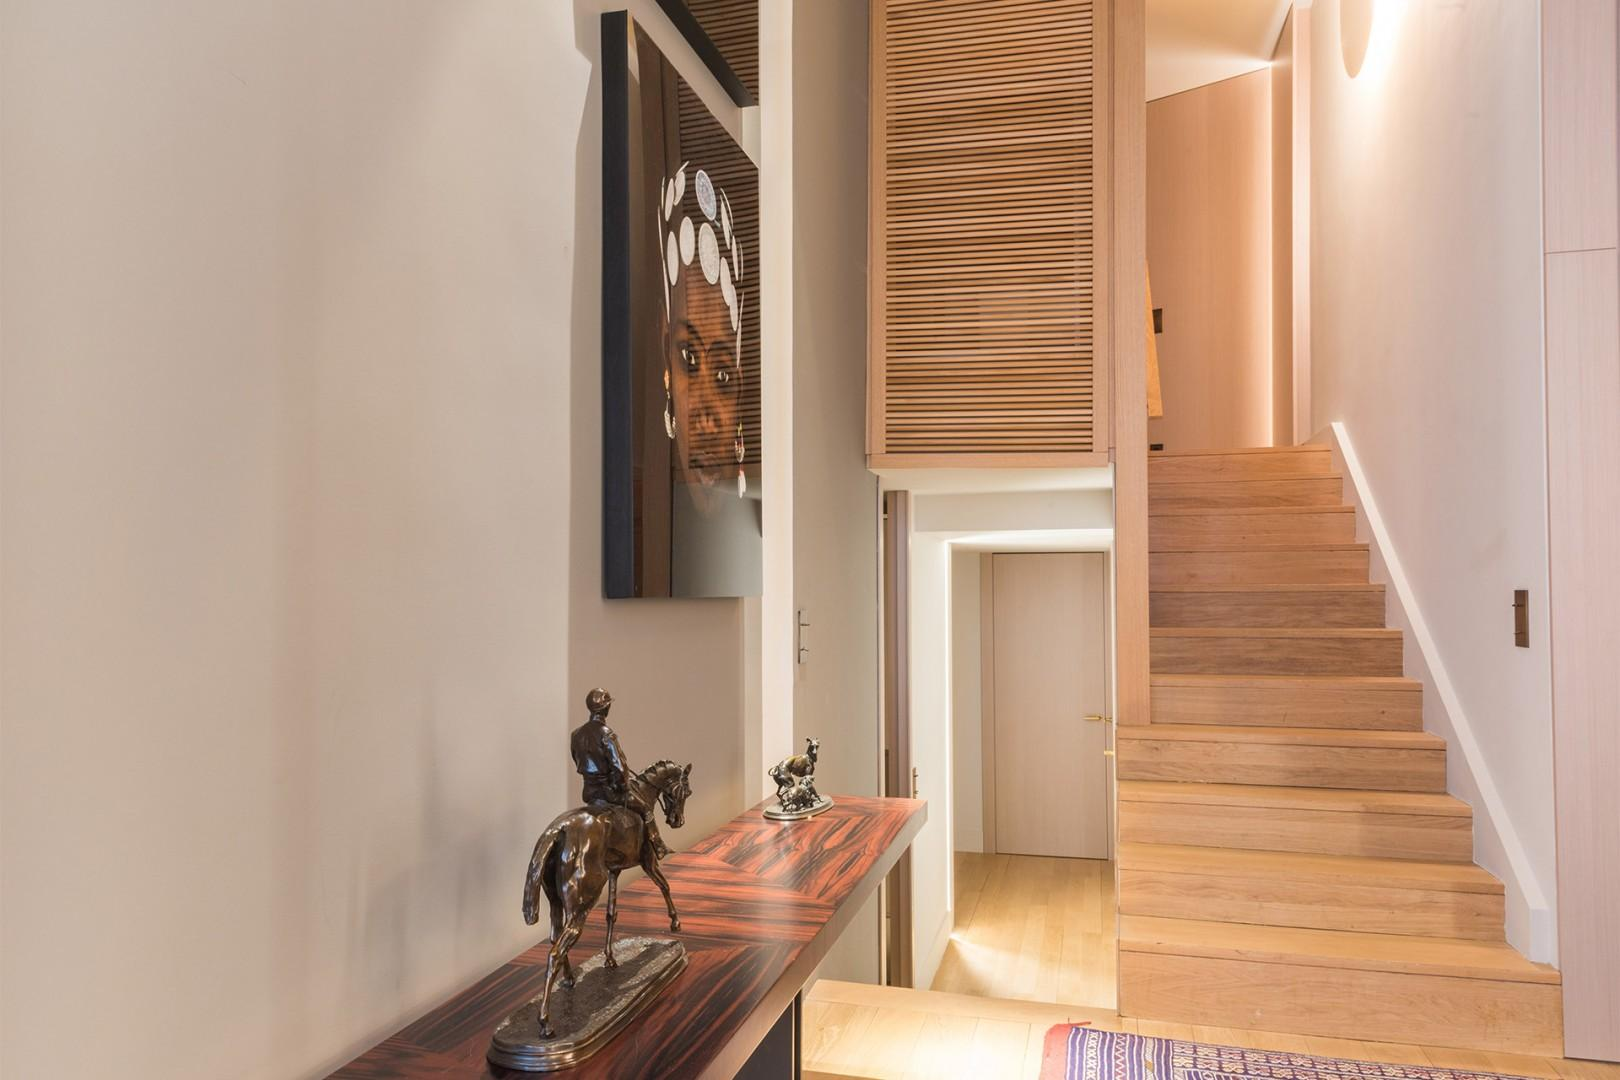 This spacious home is situated on three levels.